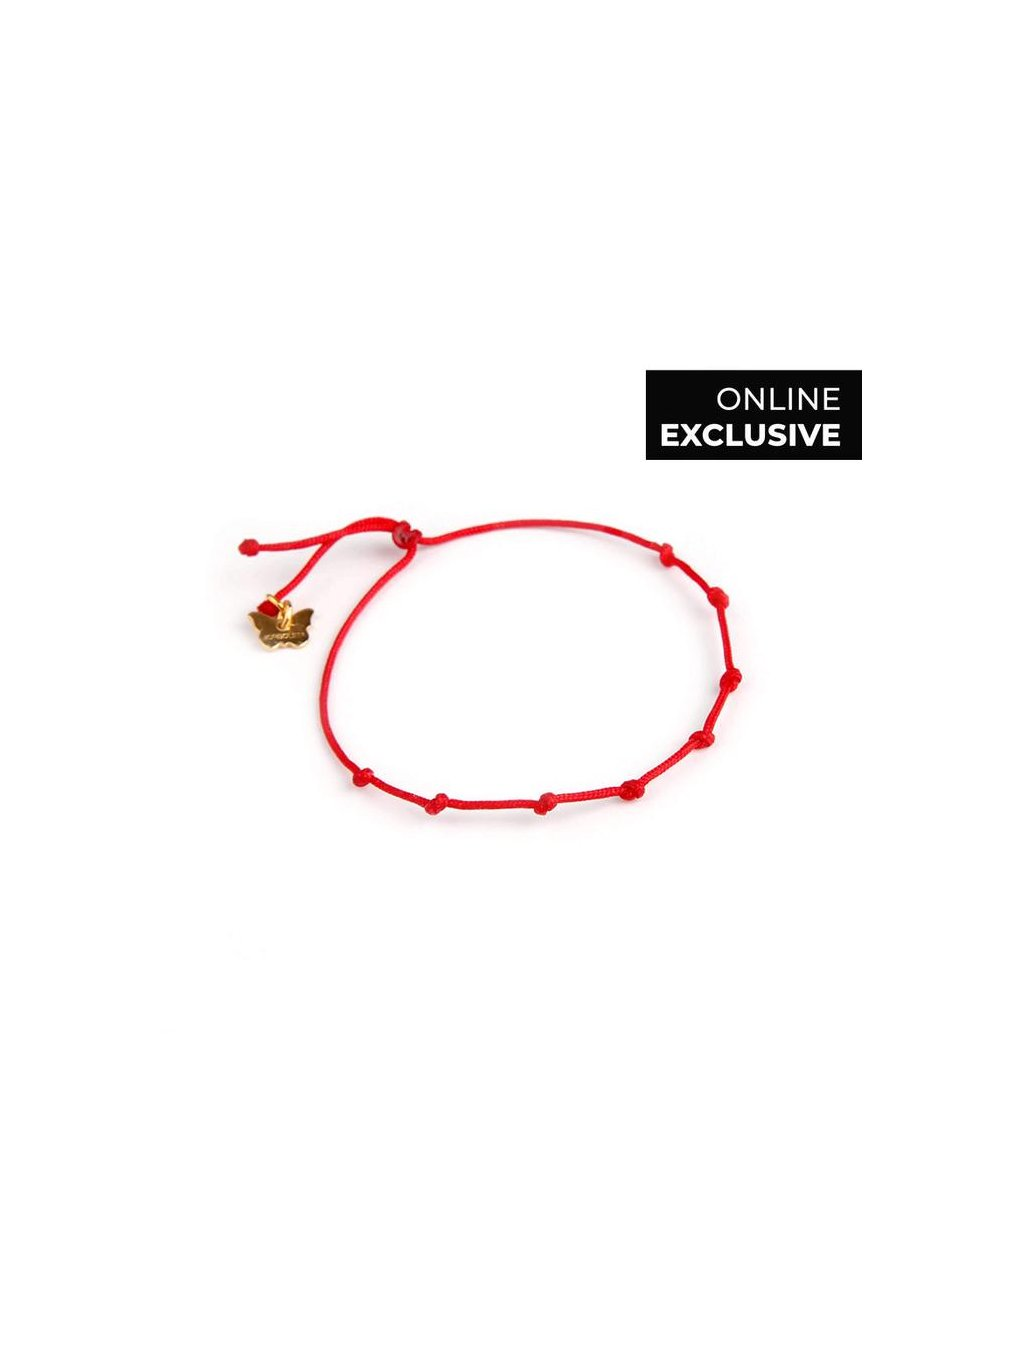 Online exclusive Red String no8 700x